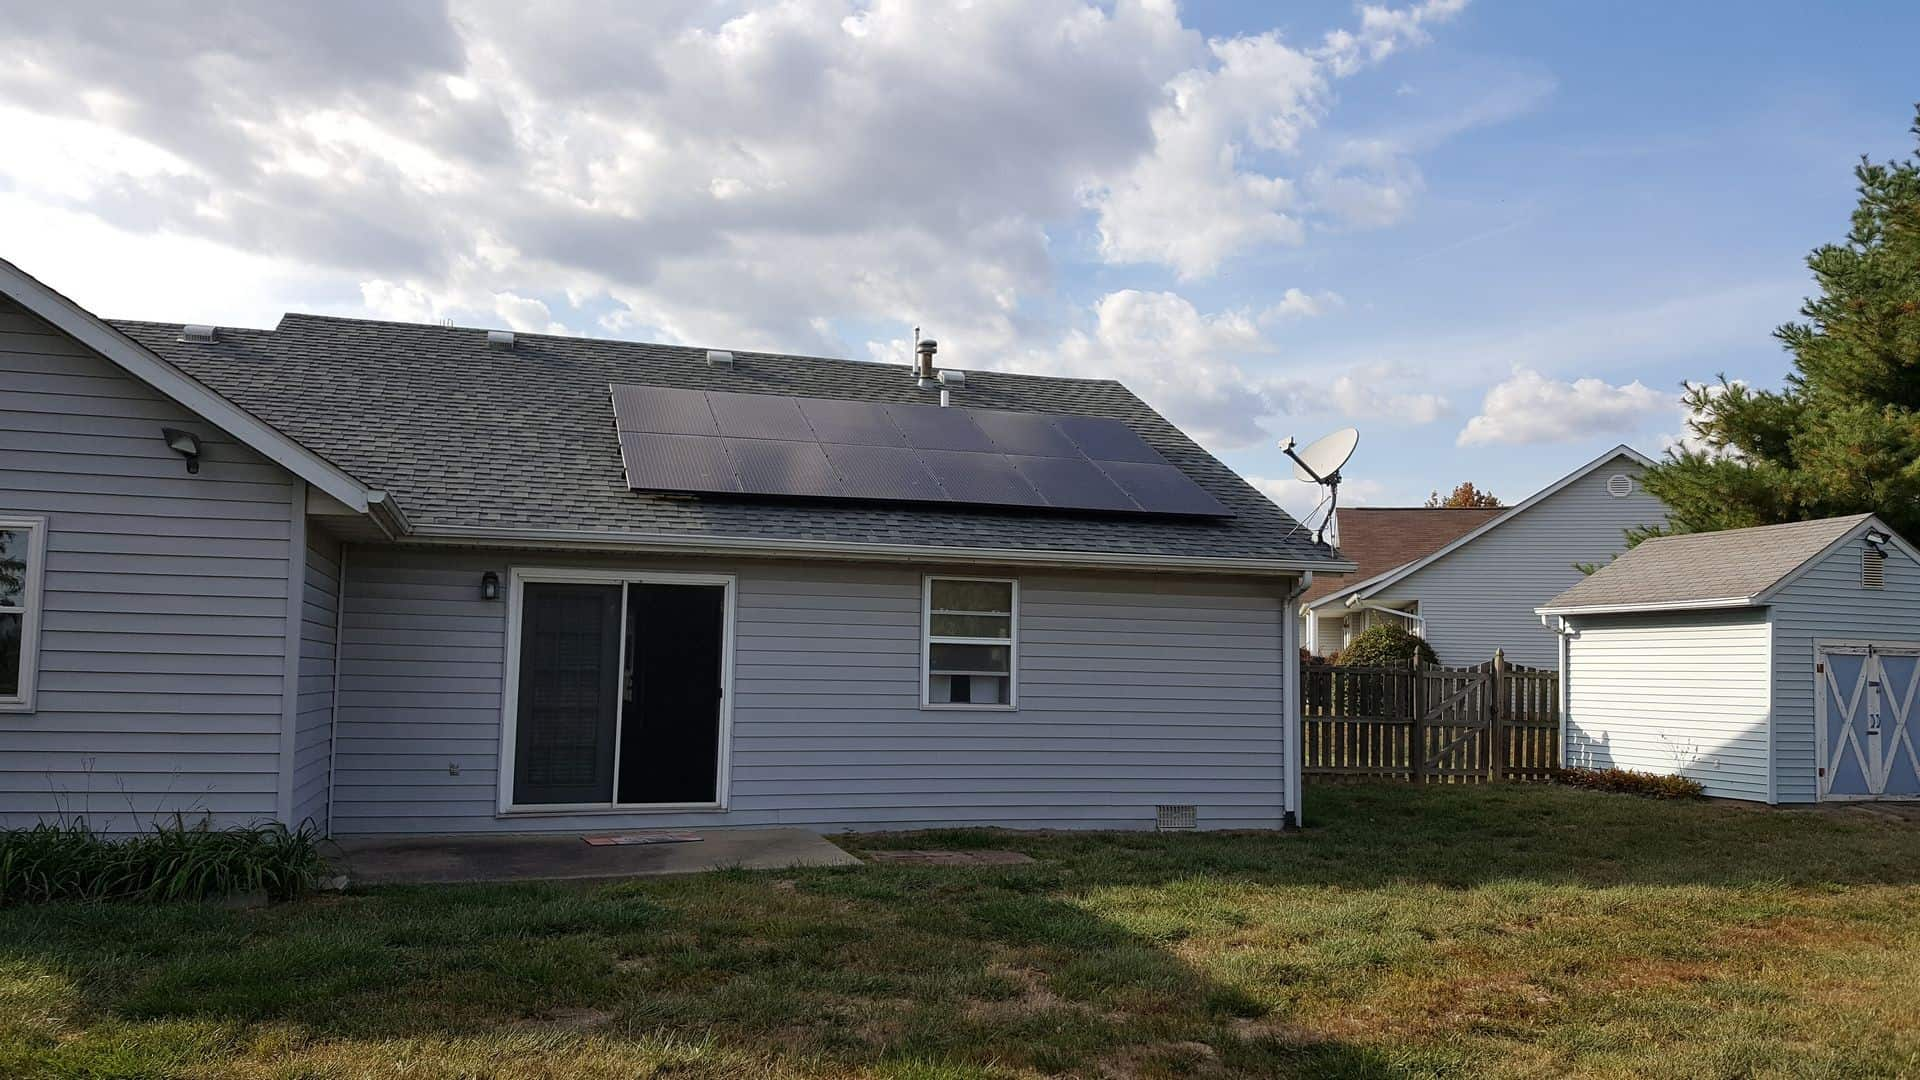 Cooley Residence – Belleville IL – 3.36kW